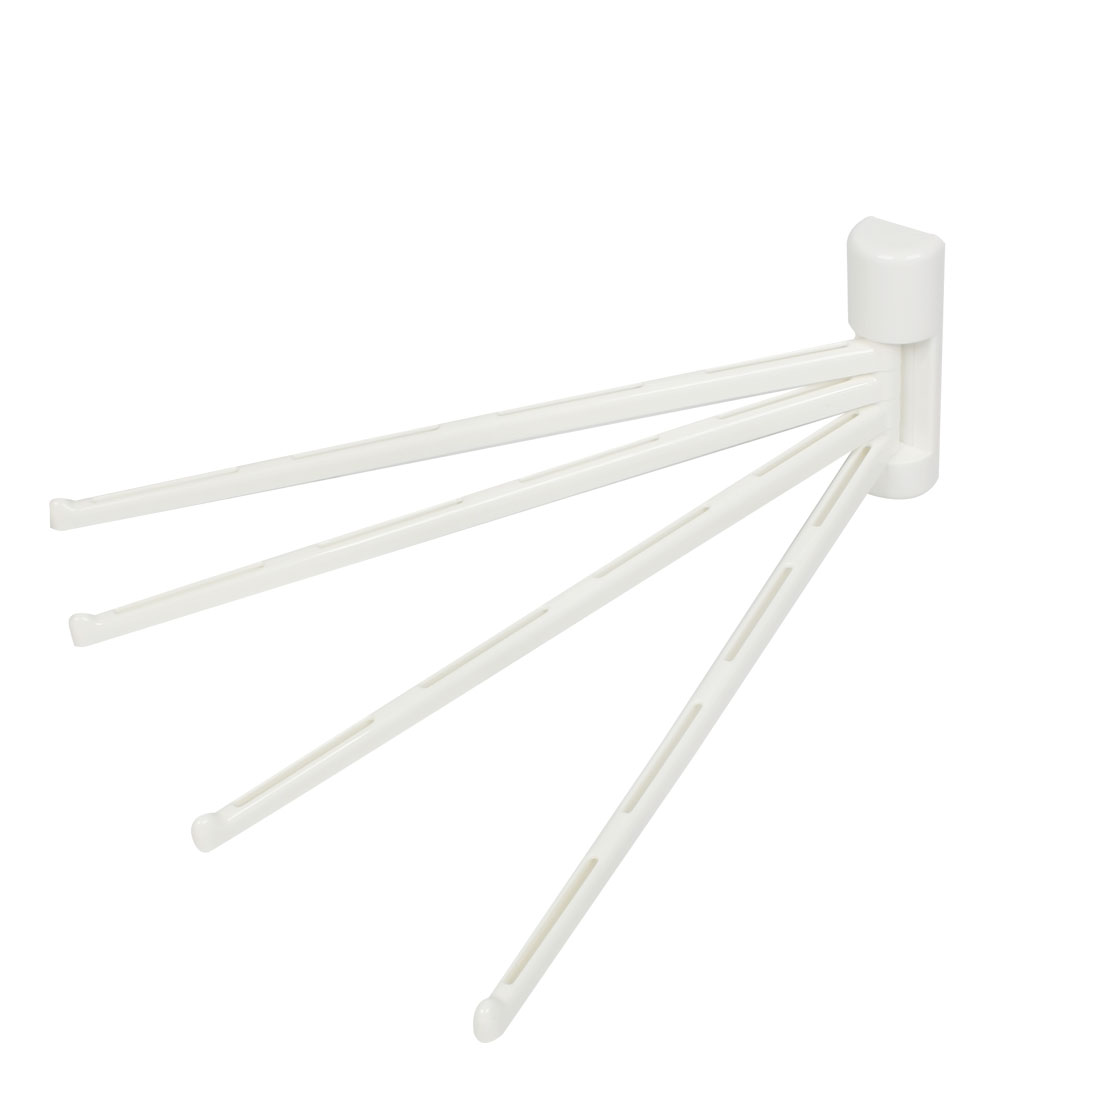 "Swing Plastic 4 Arms Towel Bar Rack Holder Kitchen Bathroom 13"" Long"